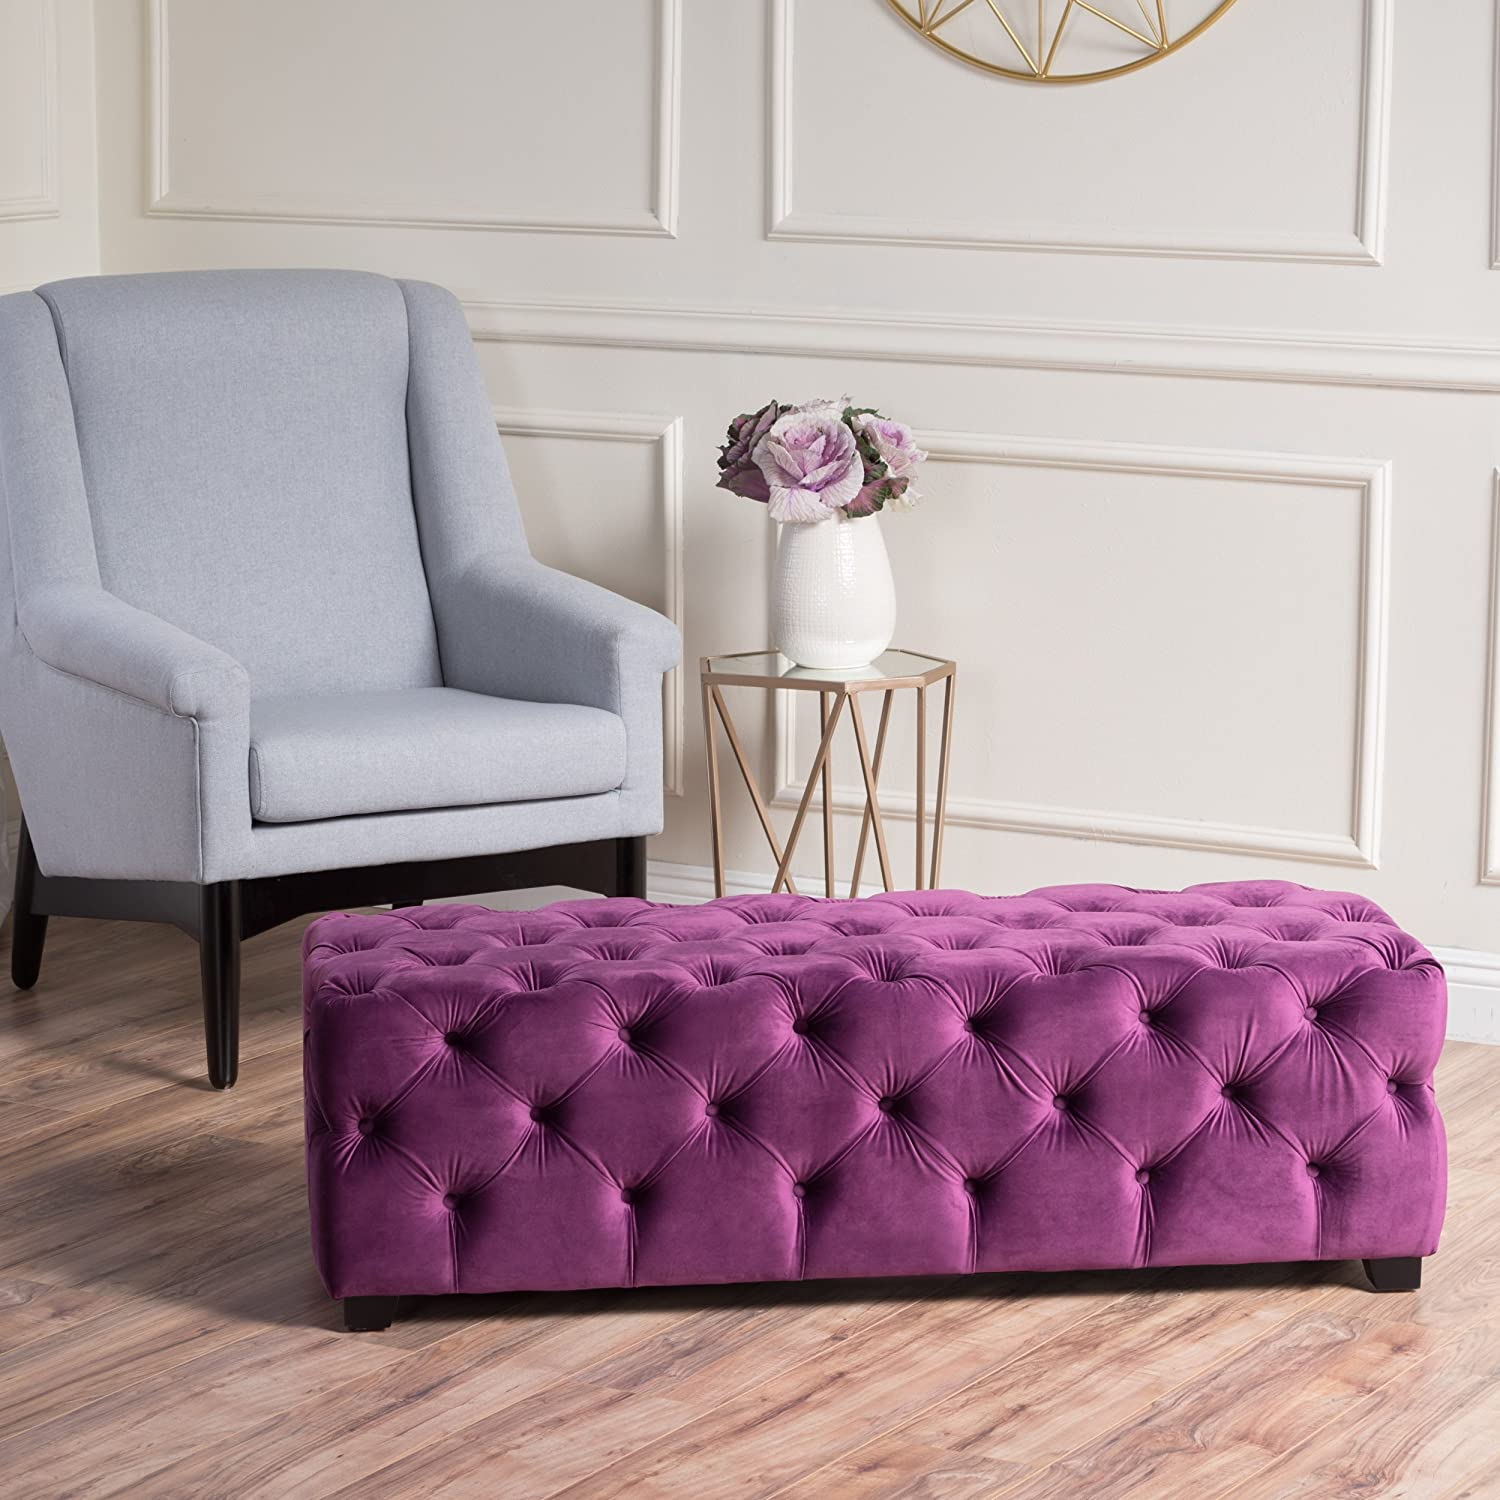 Christopher Knight Home 298422 Provence Purple Tufted Velvet Fabric Rectangle Ottoman Bench